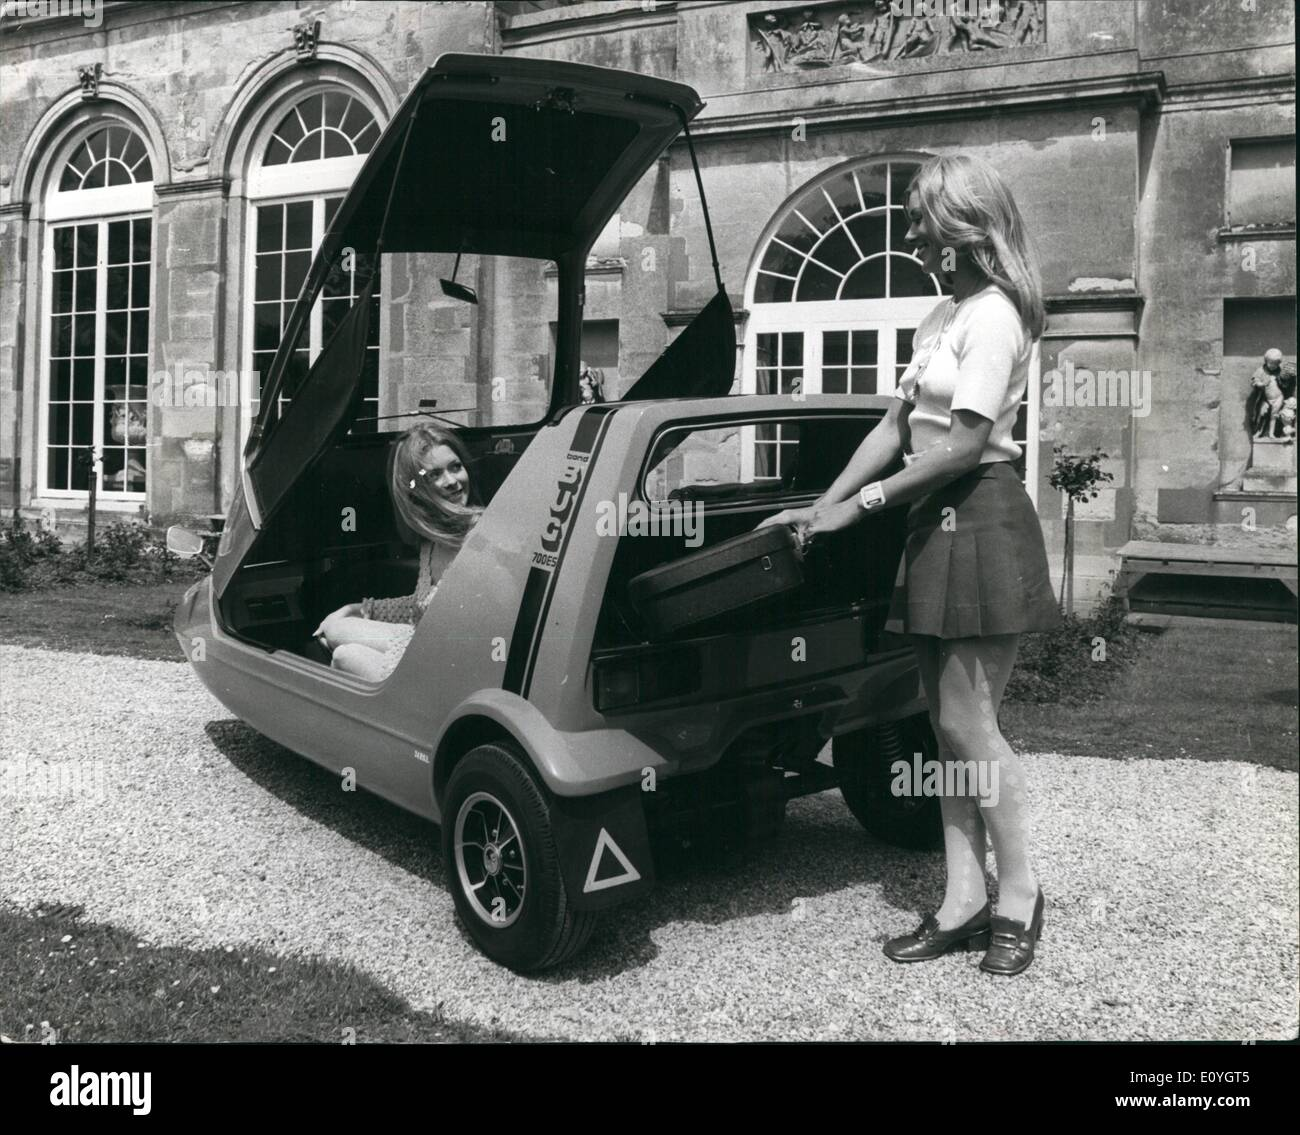 May 05, 1970 - The ''Bond Bug - The Youth Car Of The 70's: The Bond Bug, a revolutionary two seater claimed to be the first vehicle designed exclusively for the 17 to 25 age group, This new Rellante Motor Group Production launched with the confident aim of it becoming as big a trend setter in its field during the 1970s as the mini was in the last . Three versions are being offered they are the basic 700 ''Bara Bug medal (priced at 548, 0.4) the 700E (579.7.0) which has full ther equipment and styling refinementand the 700ES (328.19 - Stock Image